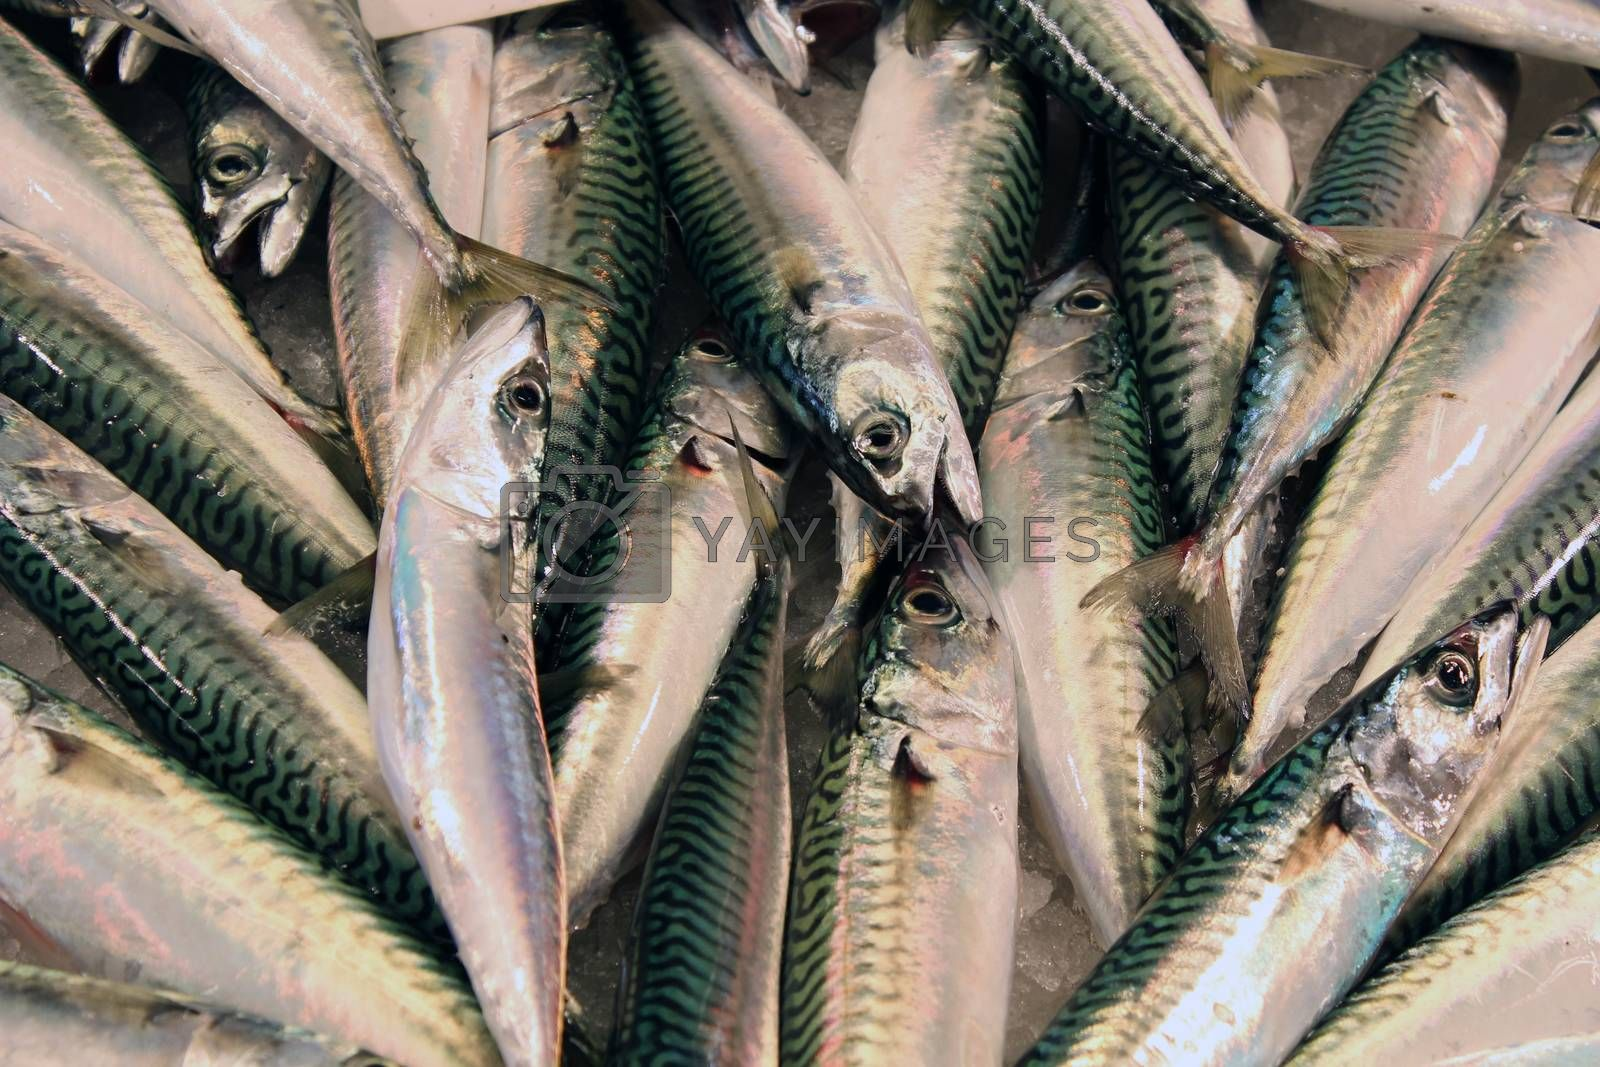 Royalty free image of Fresh sardines at a market by aamulya